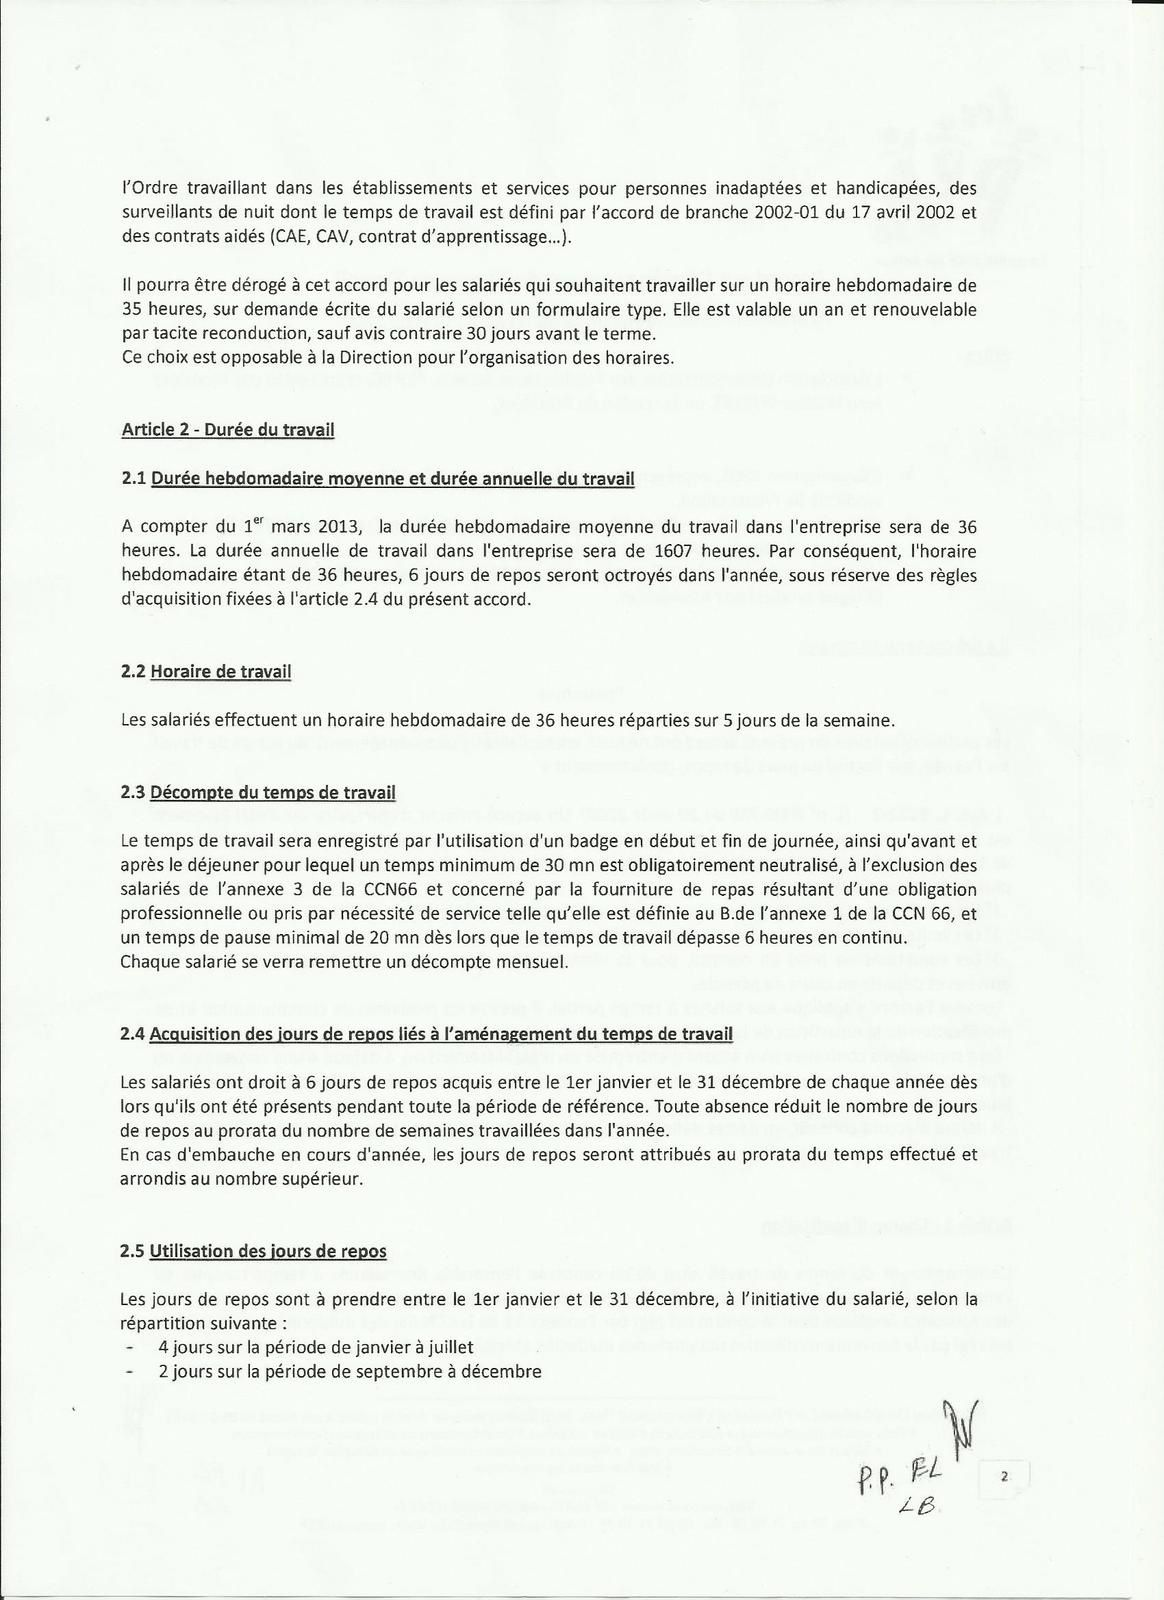 resume and cover letter writing services don juan resume